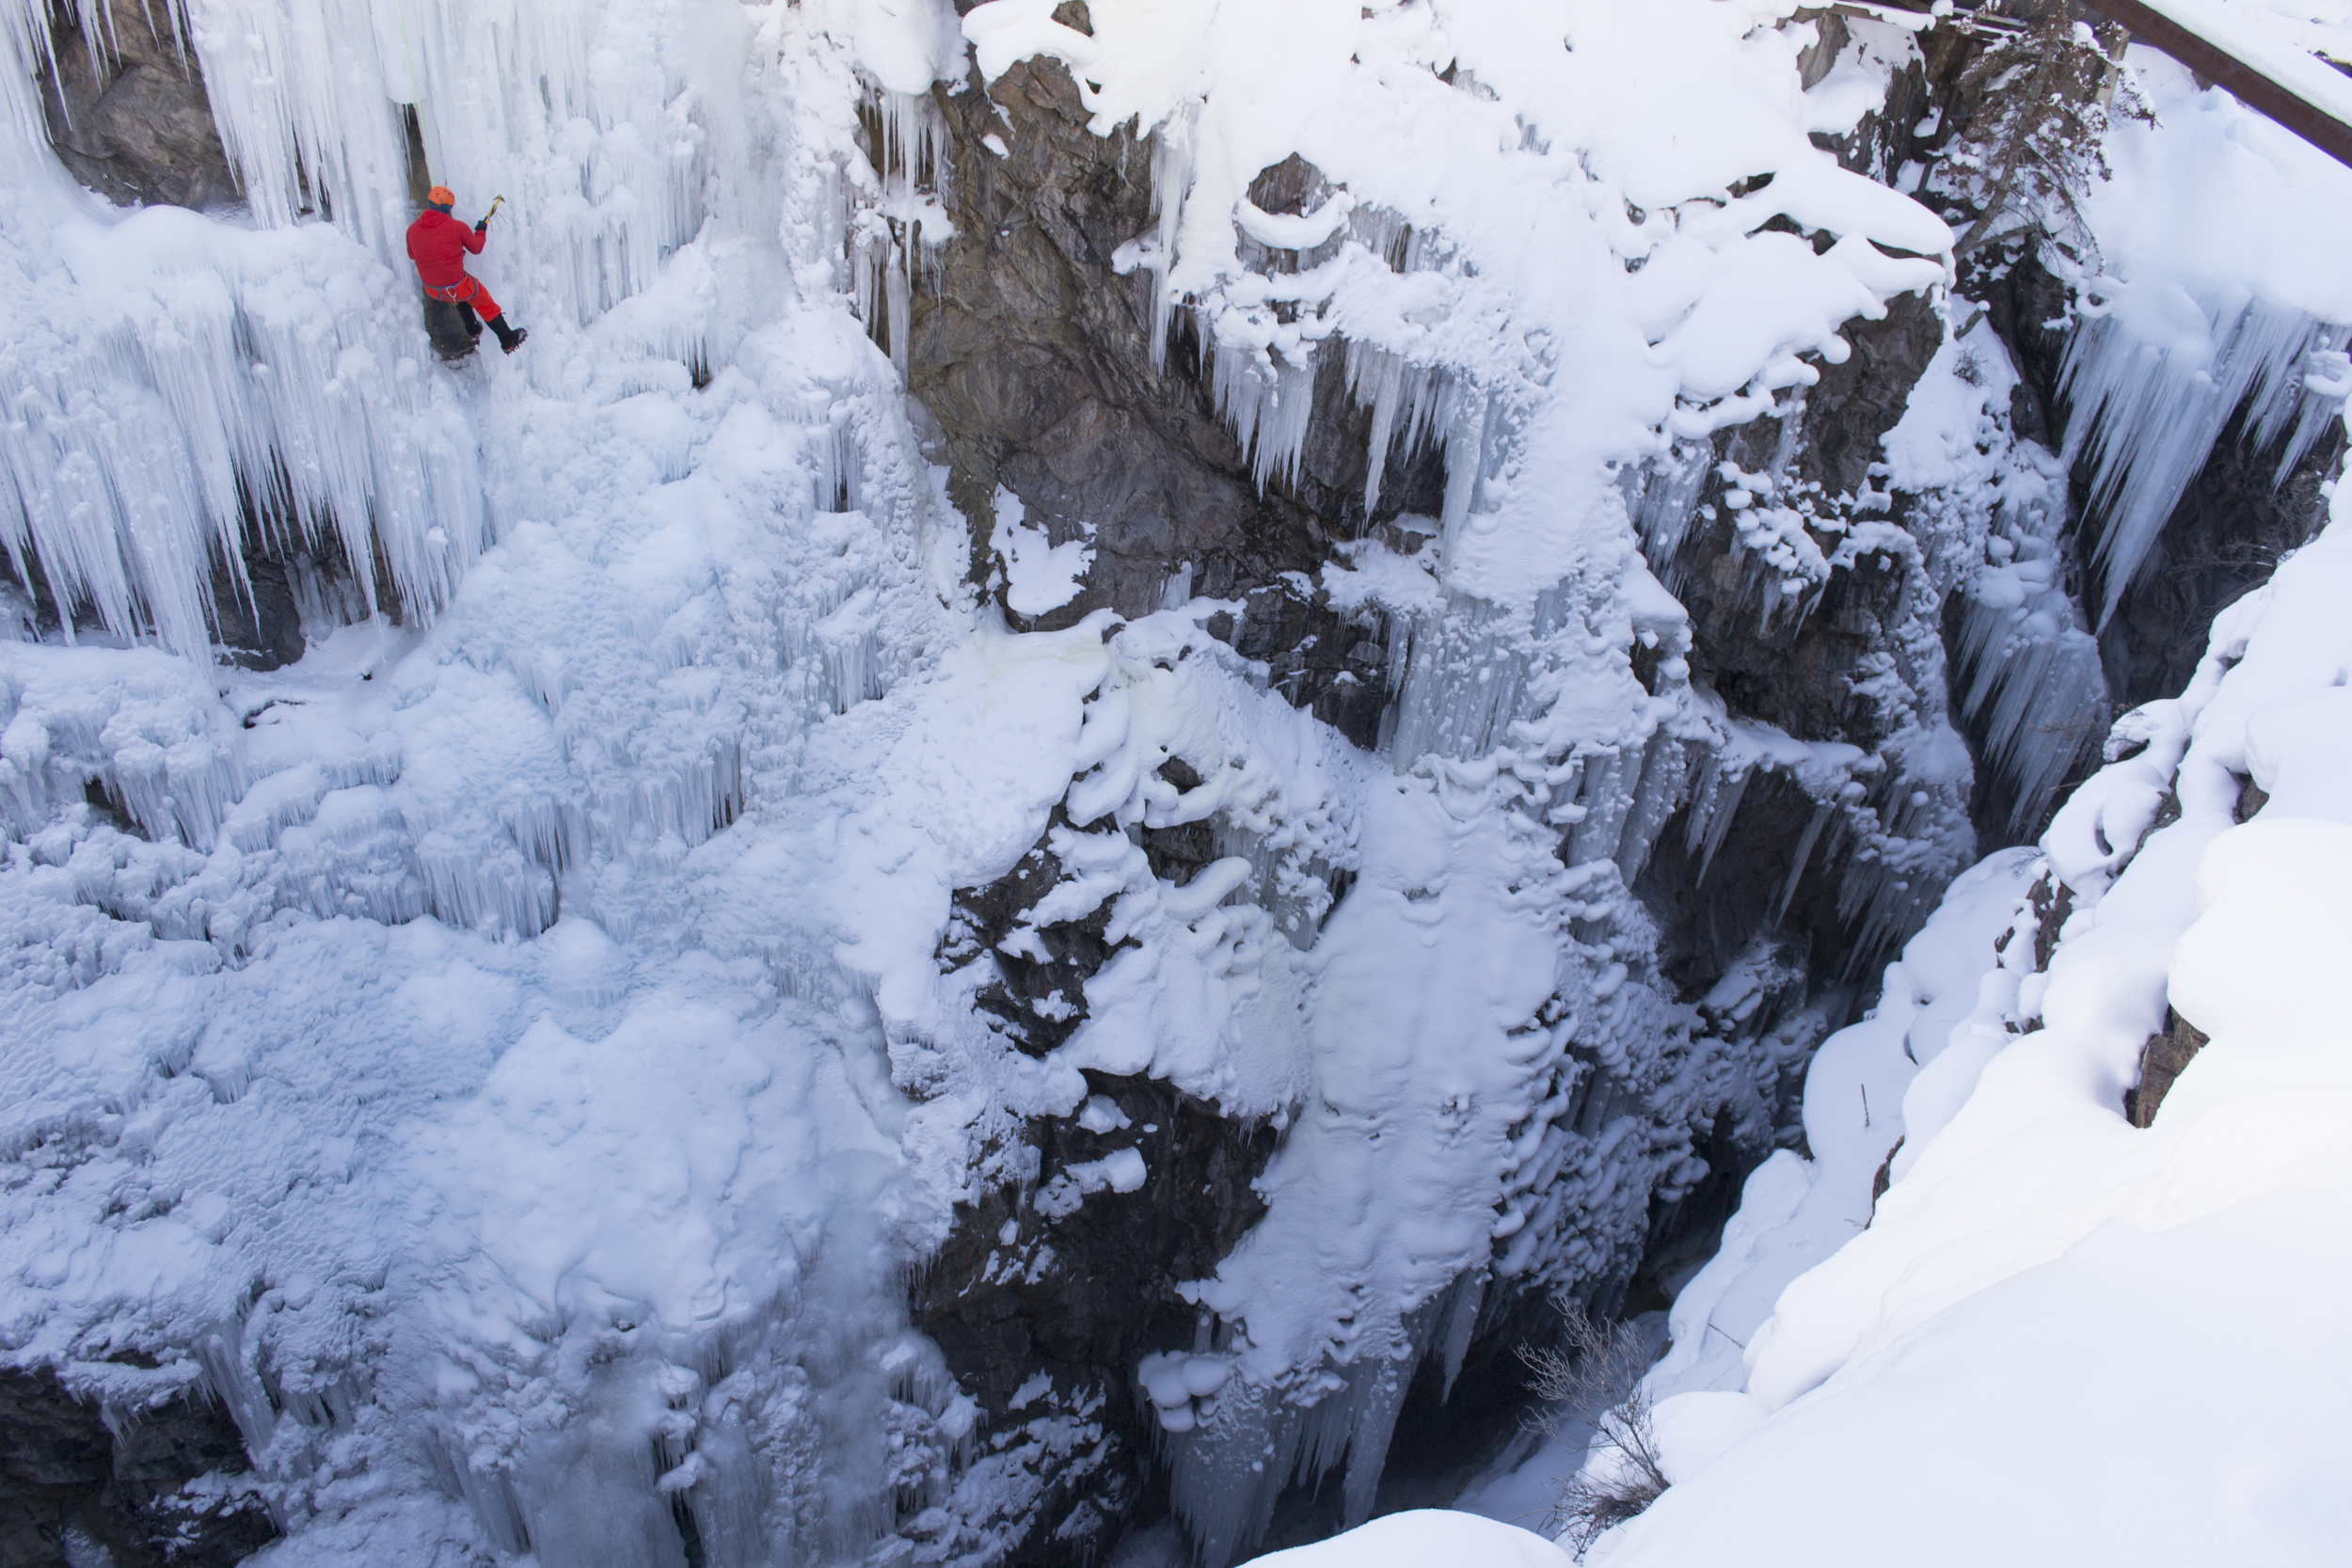 An experienced ice climber hovers over the icy gorge at the Ouray Ice Park.